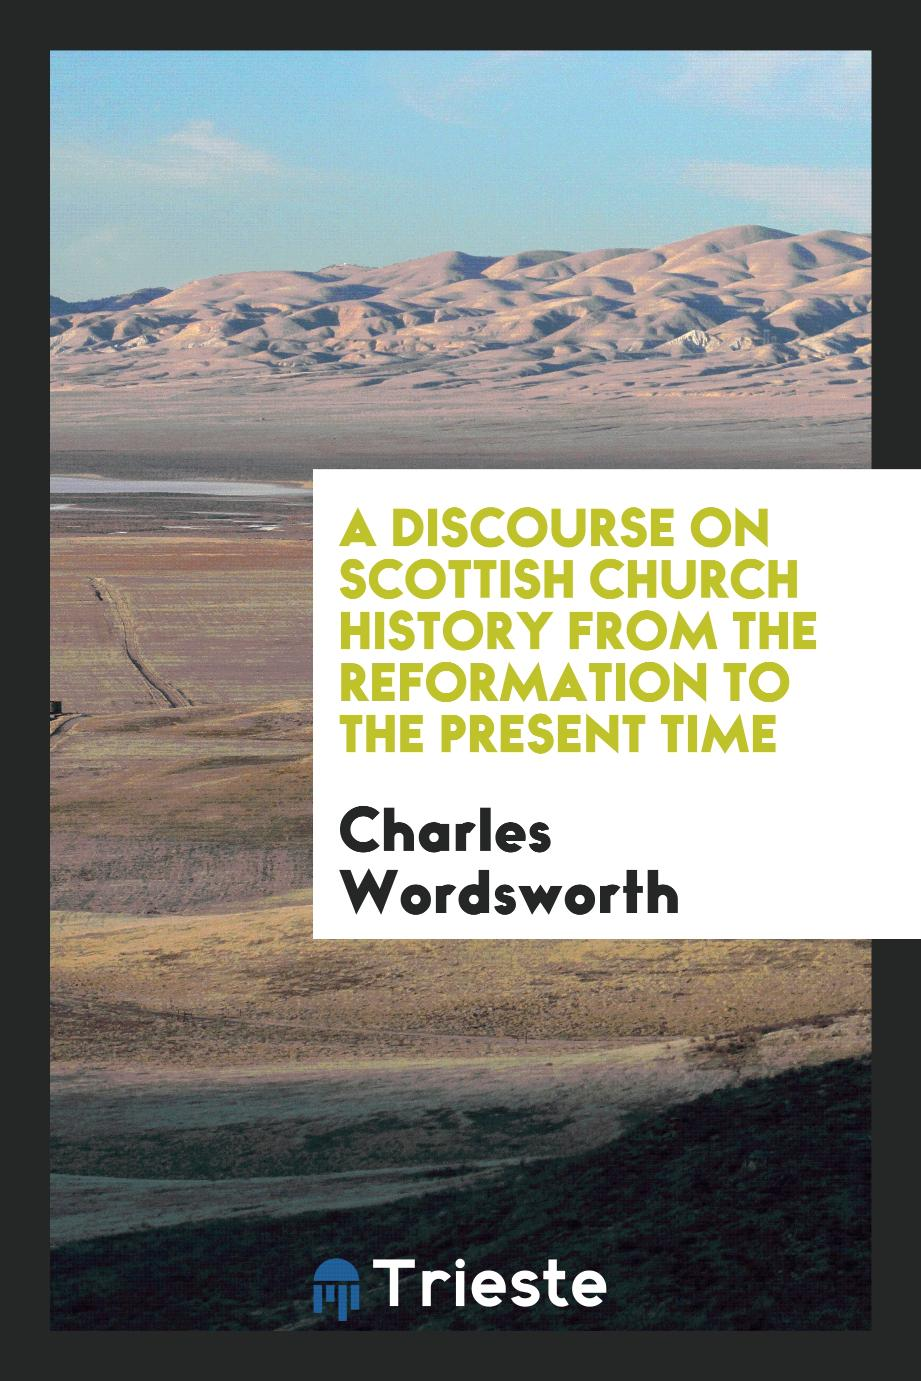 A Discourse on Scottish Church History from the Reformation to the Present Time